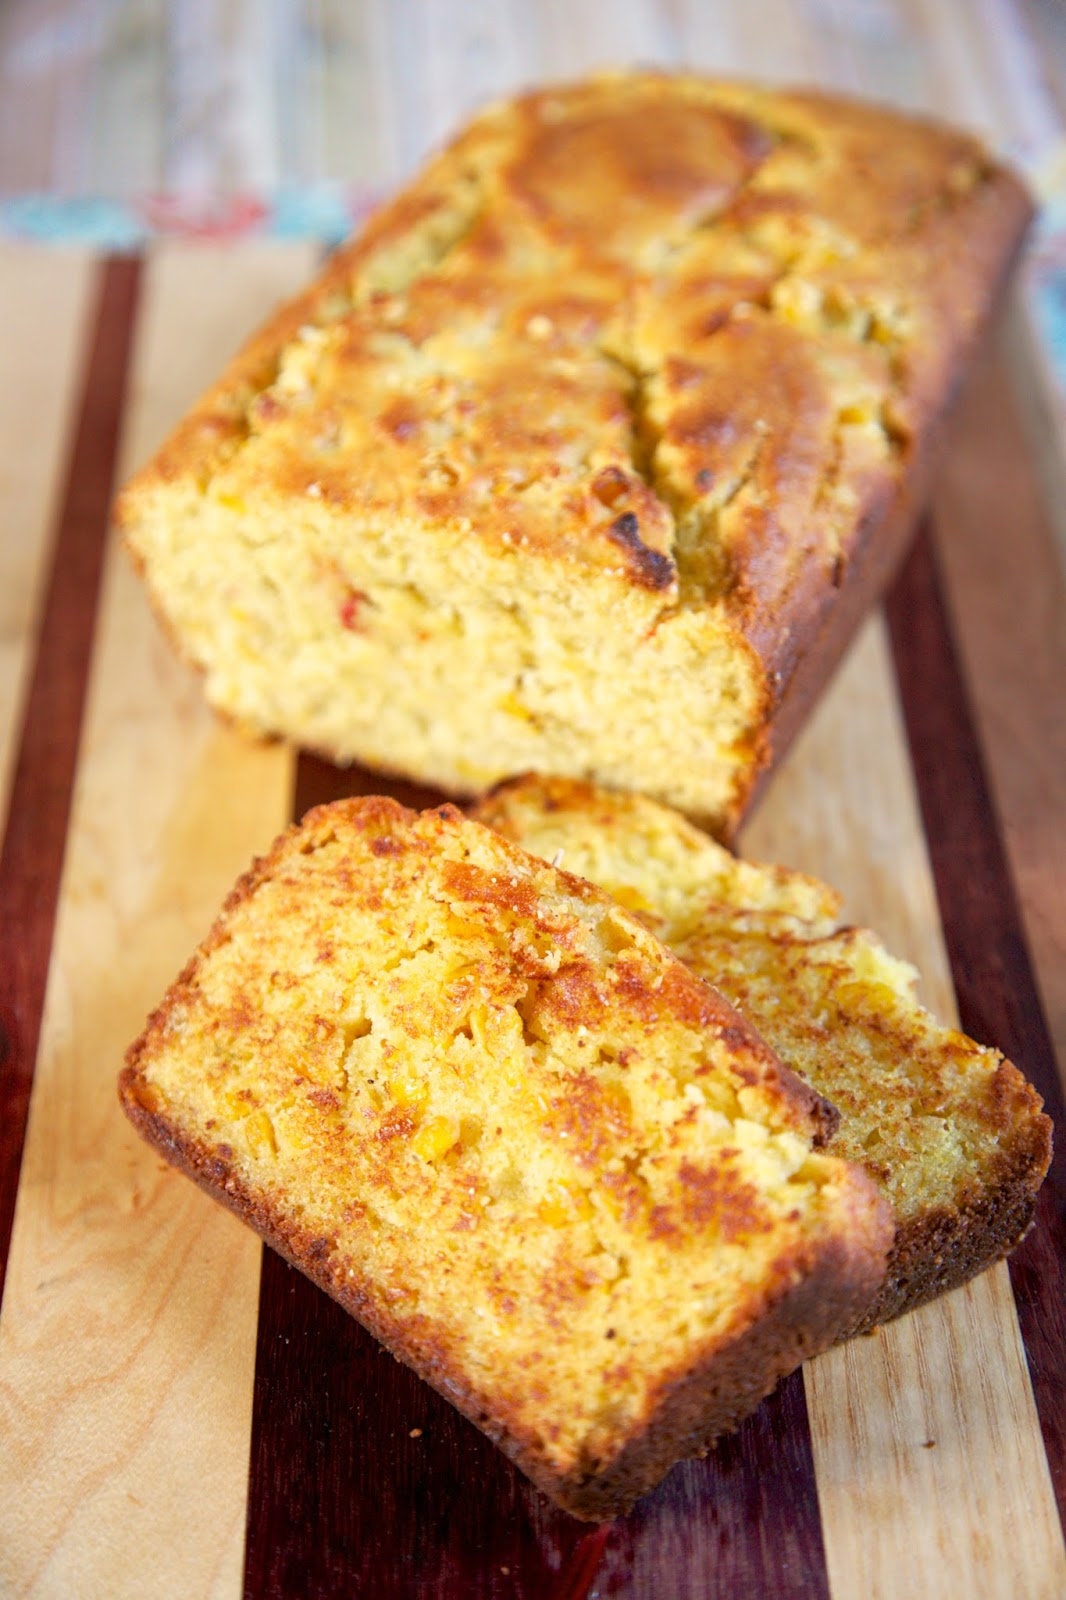 Texas Toast Cornbread - tastes just like the cornbread from your favorite BBQ Joint! Flour, cornmeal, sugar, baking powder, eggs, heavy cream, oil, honey and Mexicorn. Just a hint of sweetness. Grill slices to get maximum flavor! Great with soups and chili! #cornbread #bread #cornbreadrecipe #breadrecipe